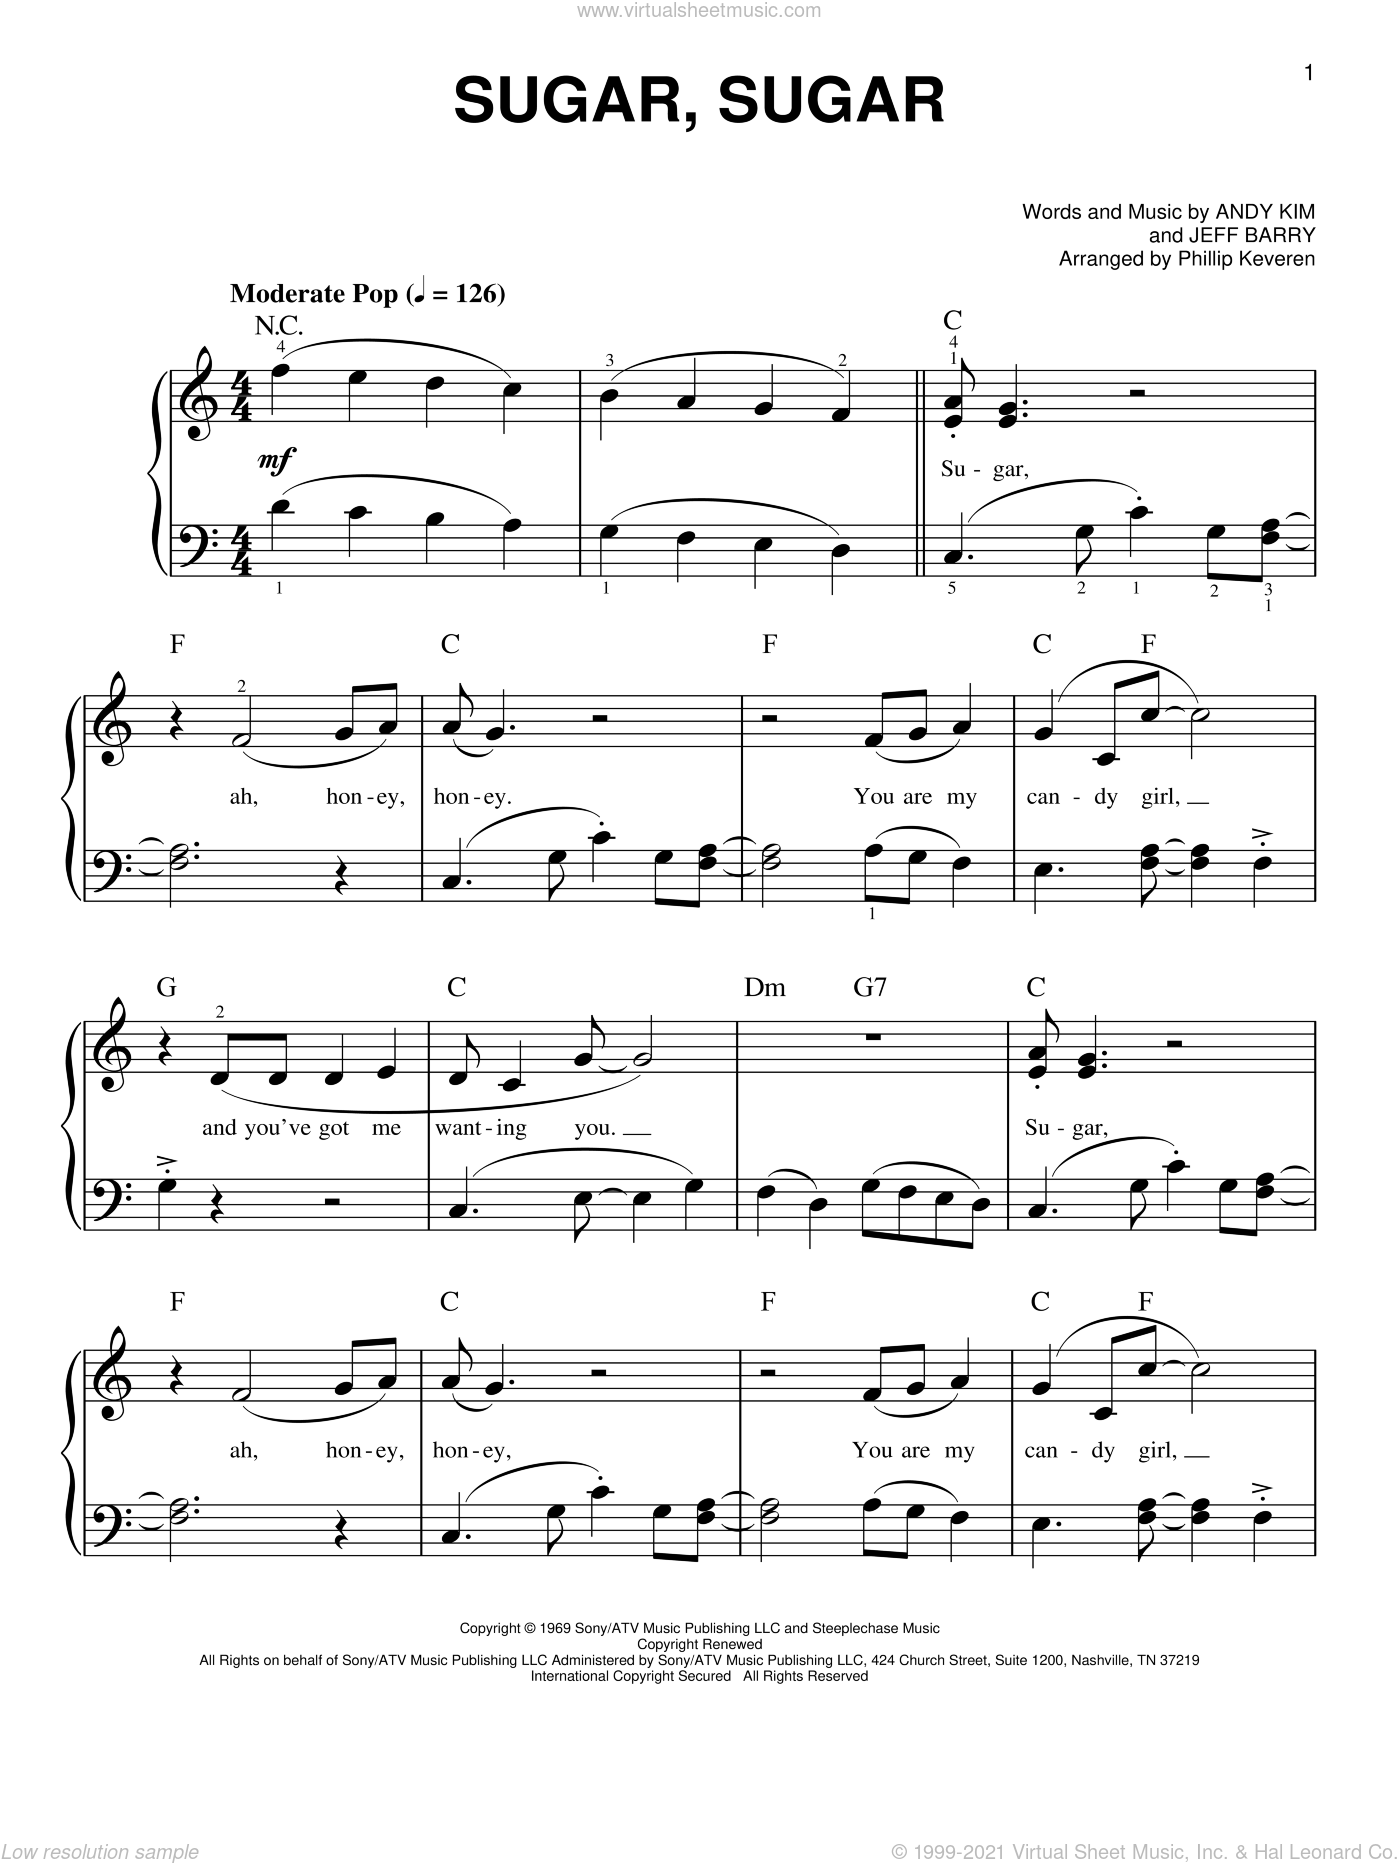 Sugar, Sugar sheet music for piano solo by Jeff Barry, Phillip Keveren, The Archies, Wilson Pickett and Andy Kim, easy skill level